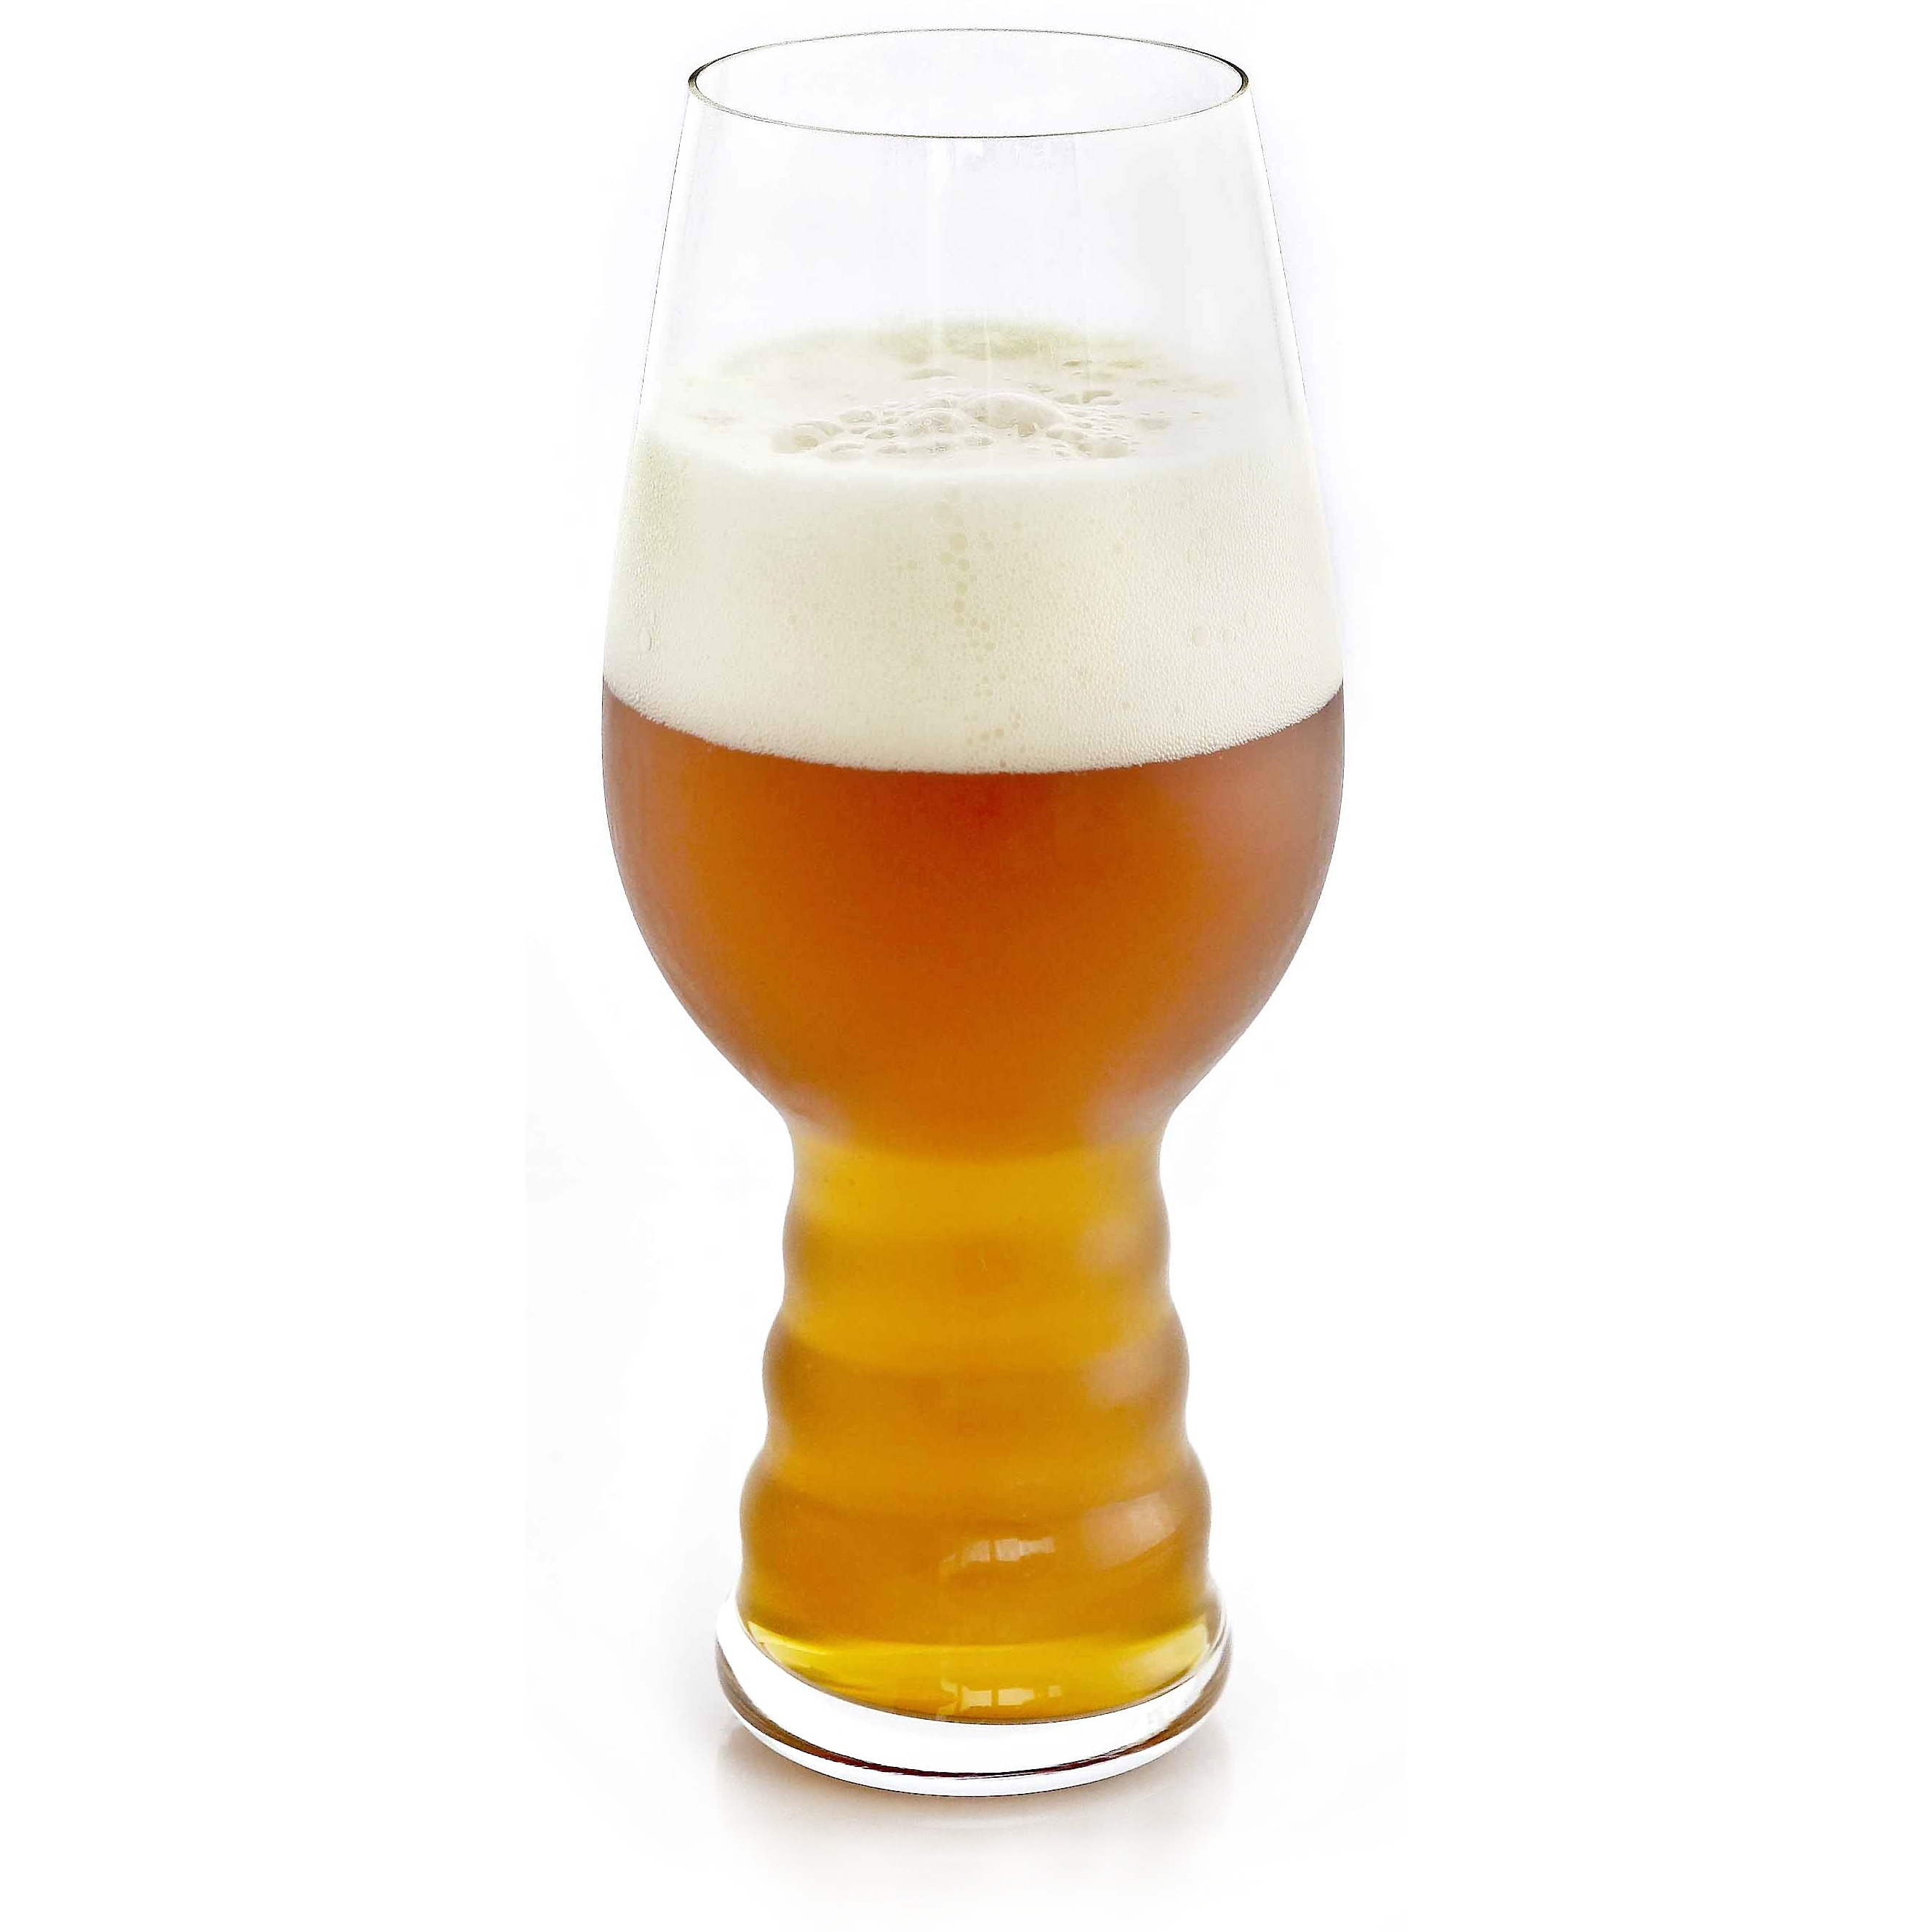 Spiegelau Beer Classics 19 Ounce IPA Glass, Set of 2